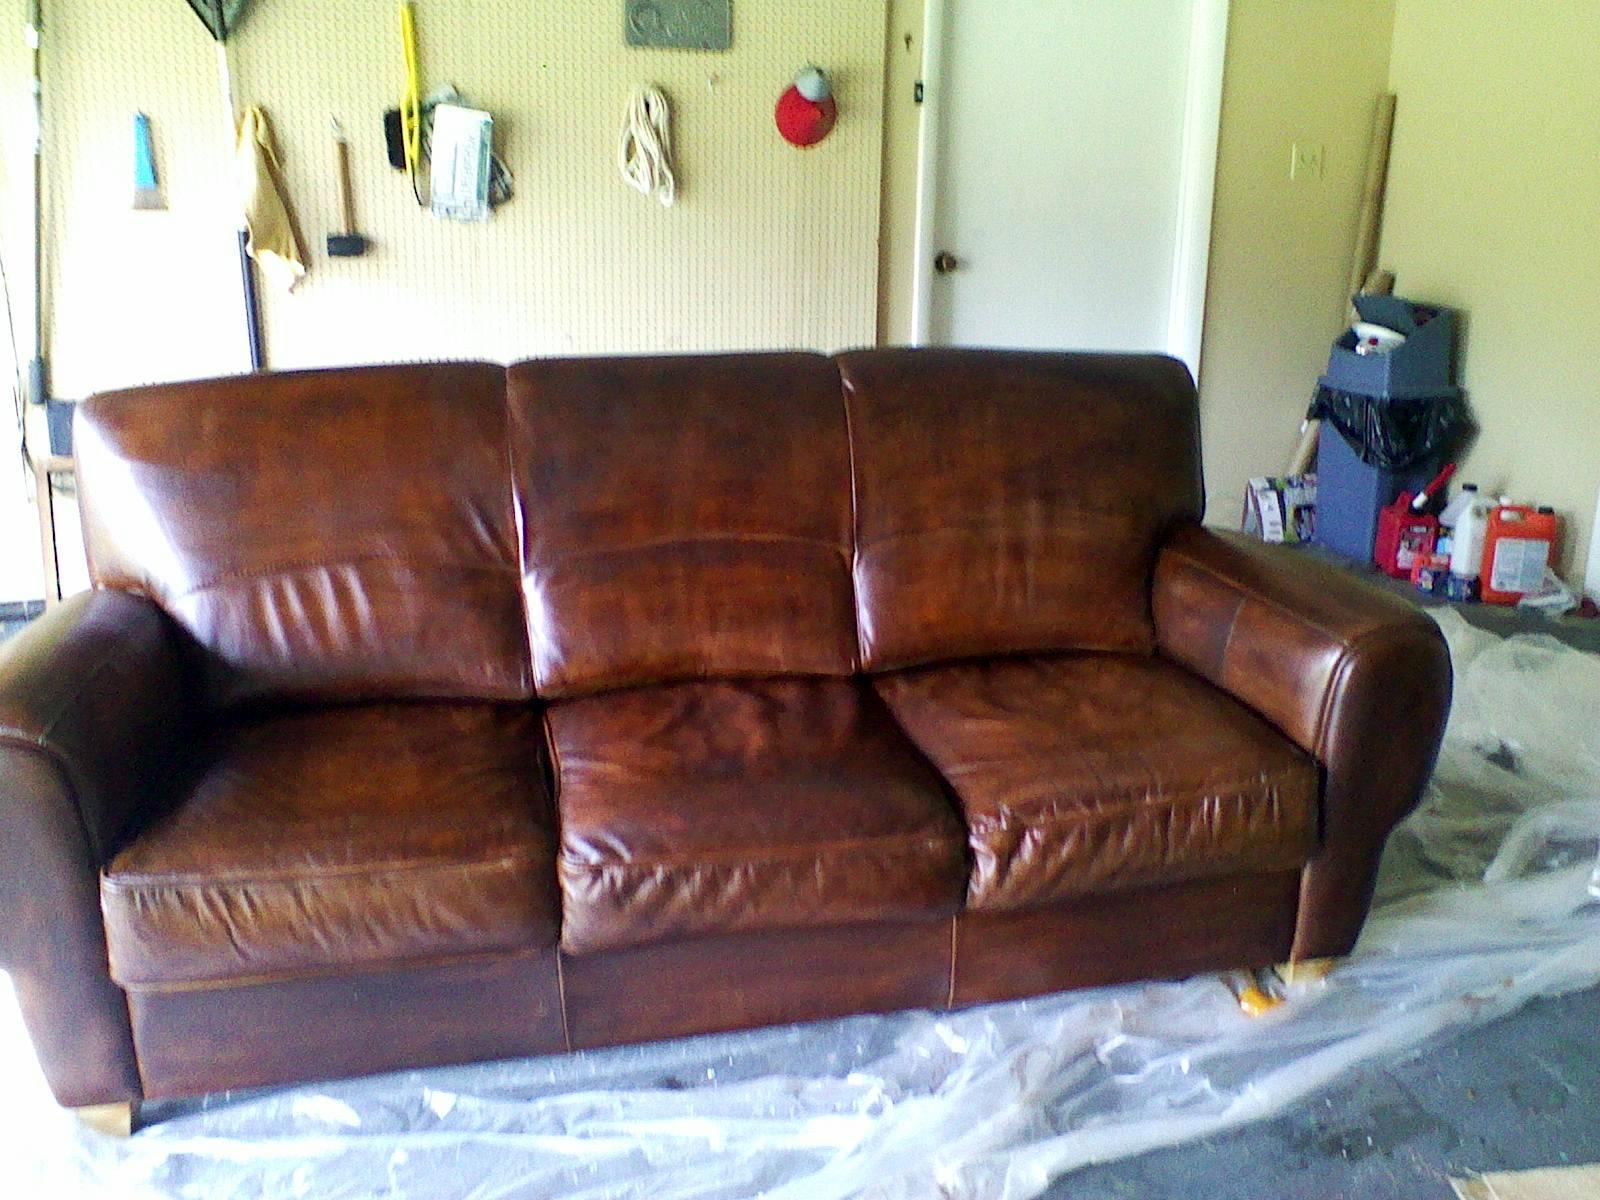 weeds how to dye or stain leather furniture rh knoxvilleflowerpot blogspot com dye leather sofa uk dye leather sofa leicester